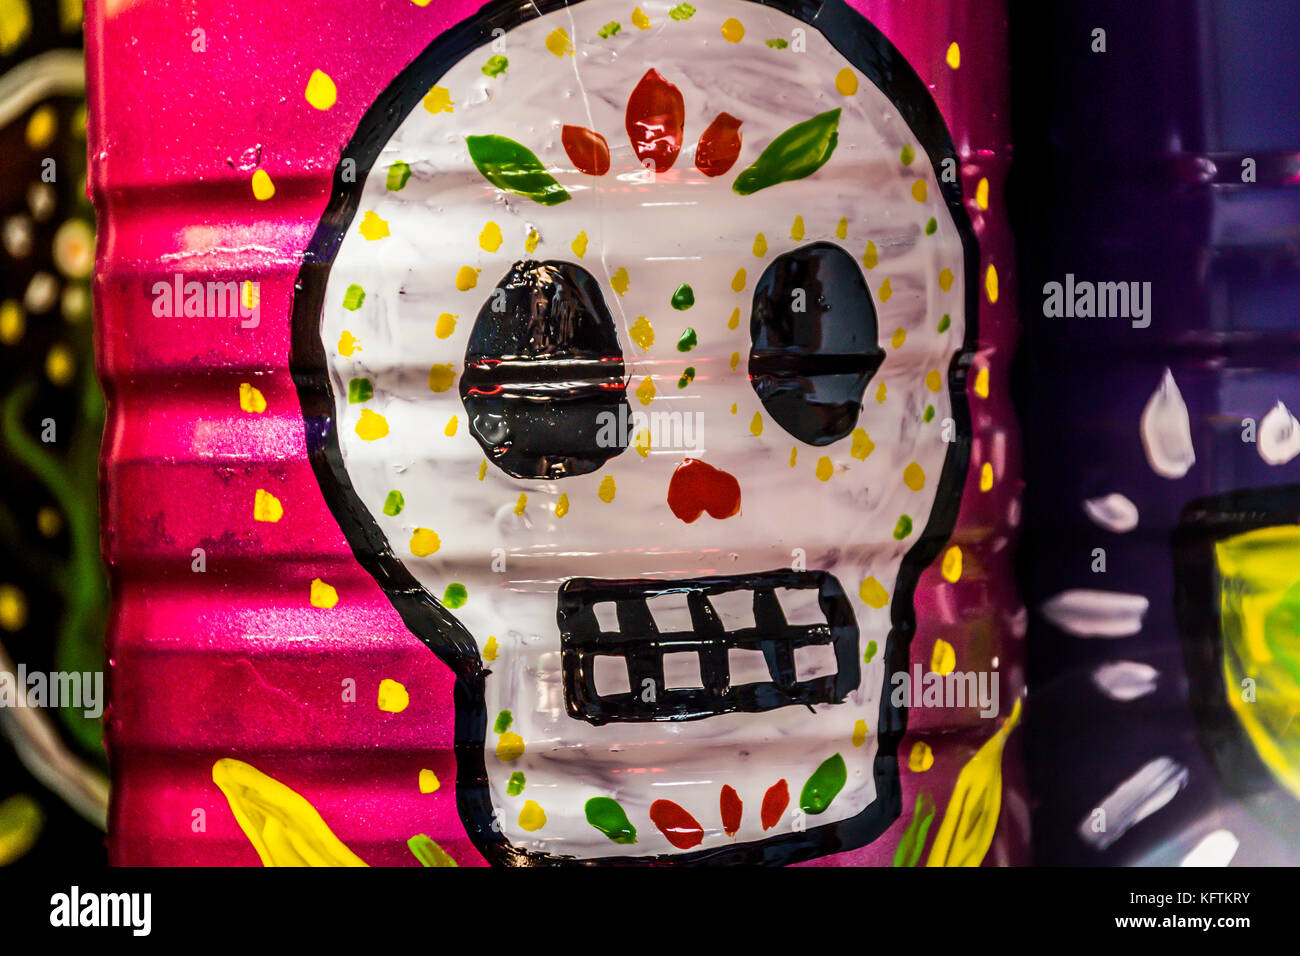 Photograph Of A Skull Mexican Symbol Traditional Day The Dead Celebration